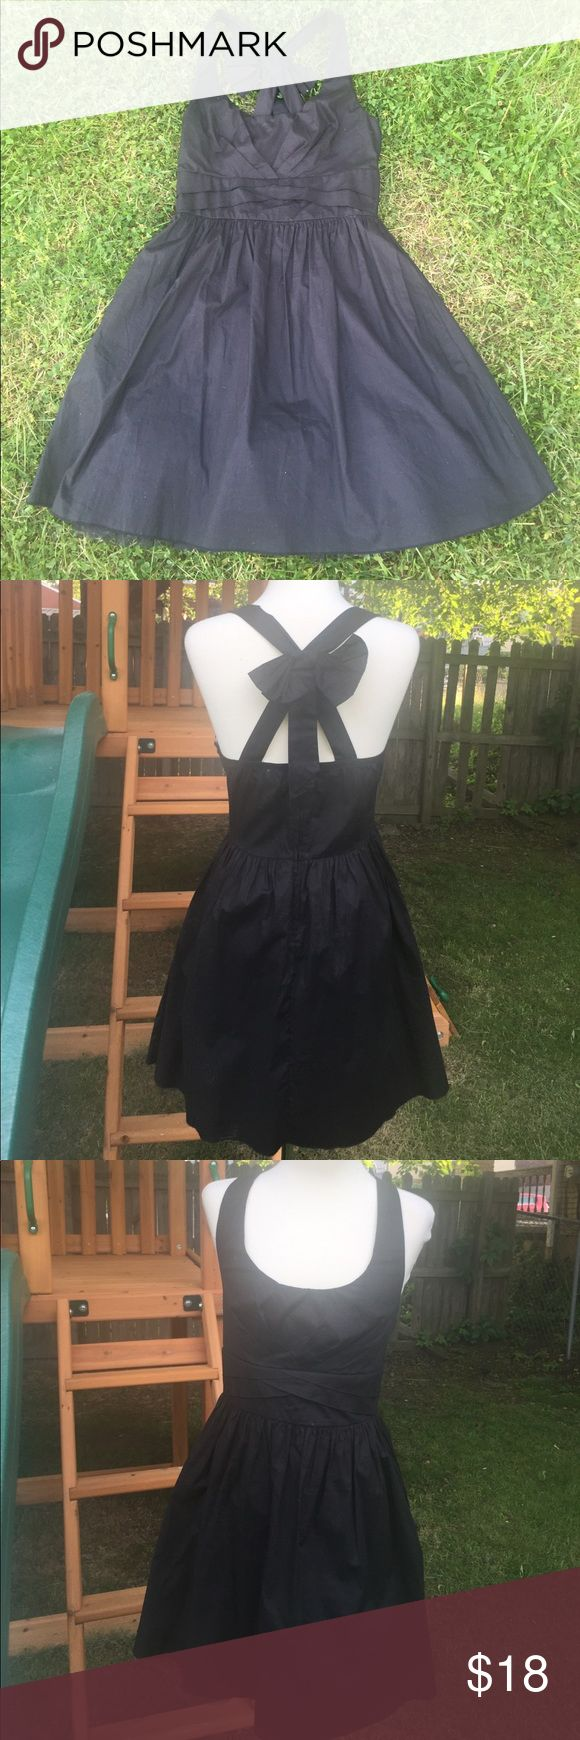 Cute Missy Dress With Bow in Back Black cotton missy dress with tulle underlay. Ruby Rox Dresses Backless